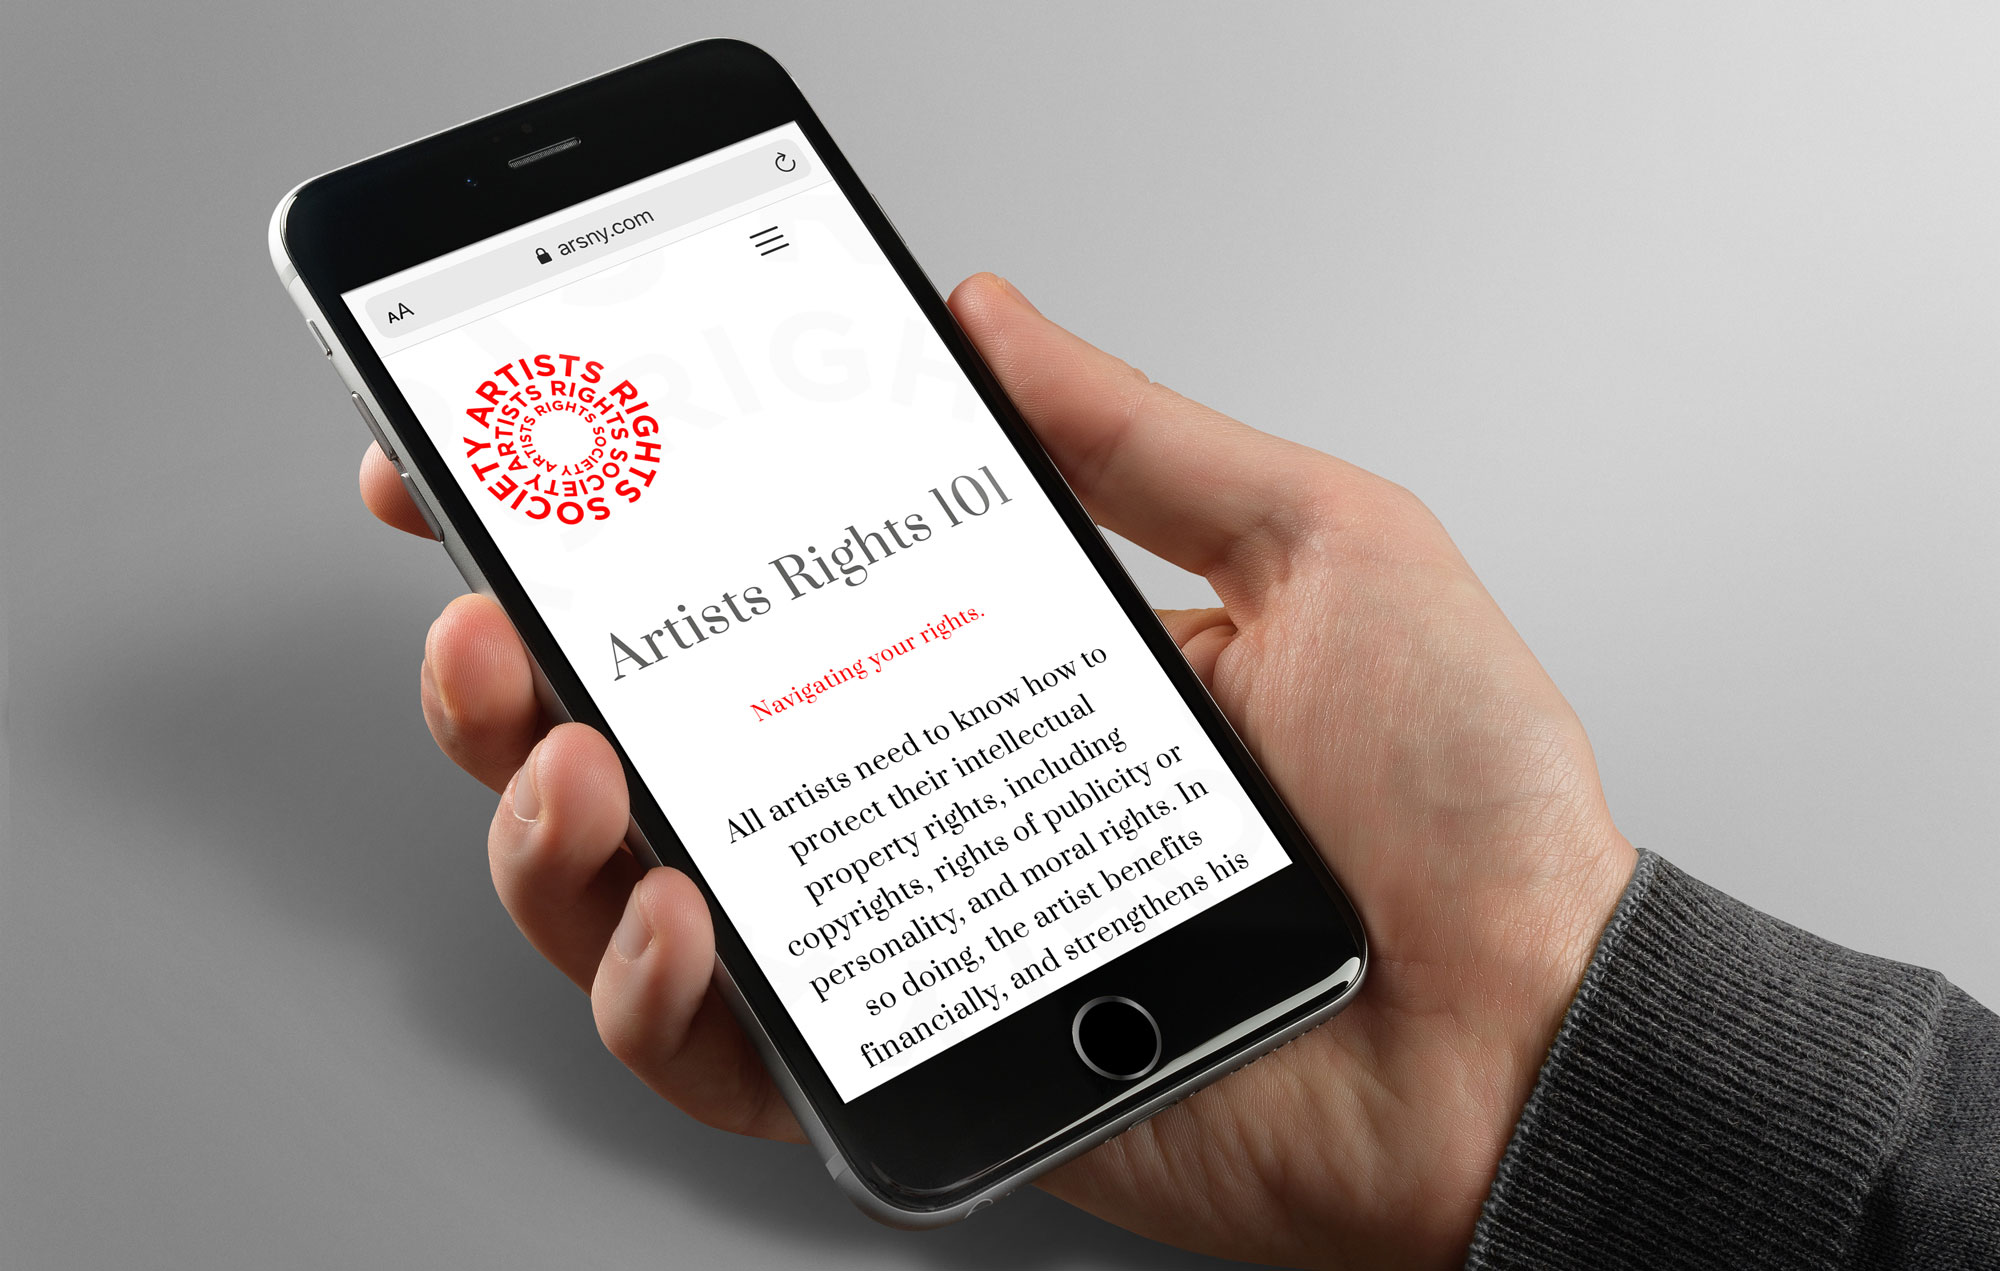 Artists Rights 101 website page design shown on mobile phone